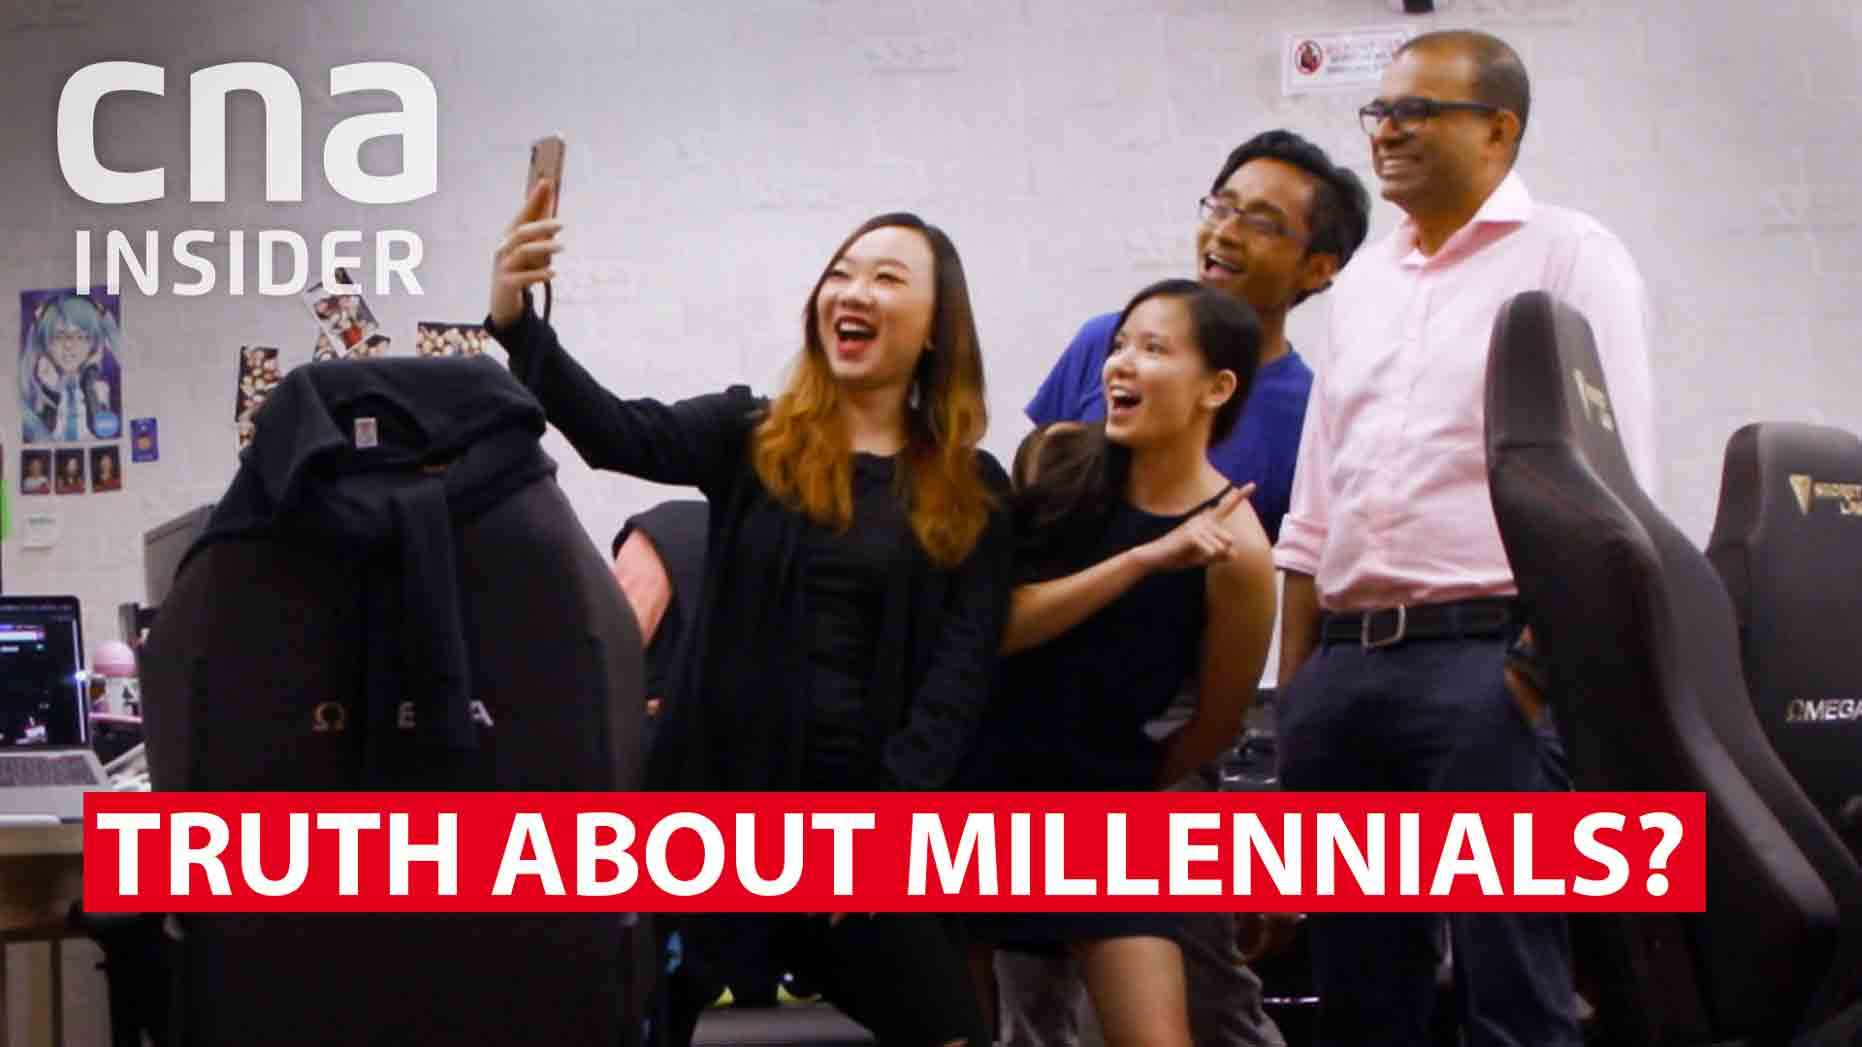 The truth about millennials?